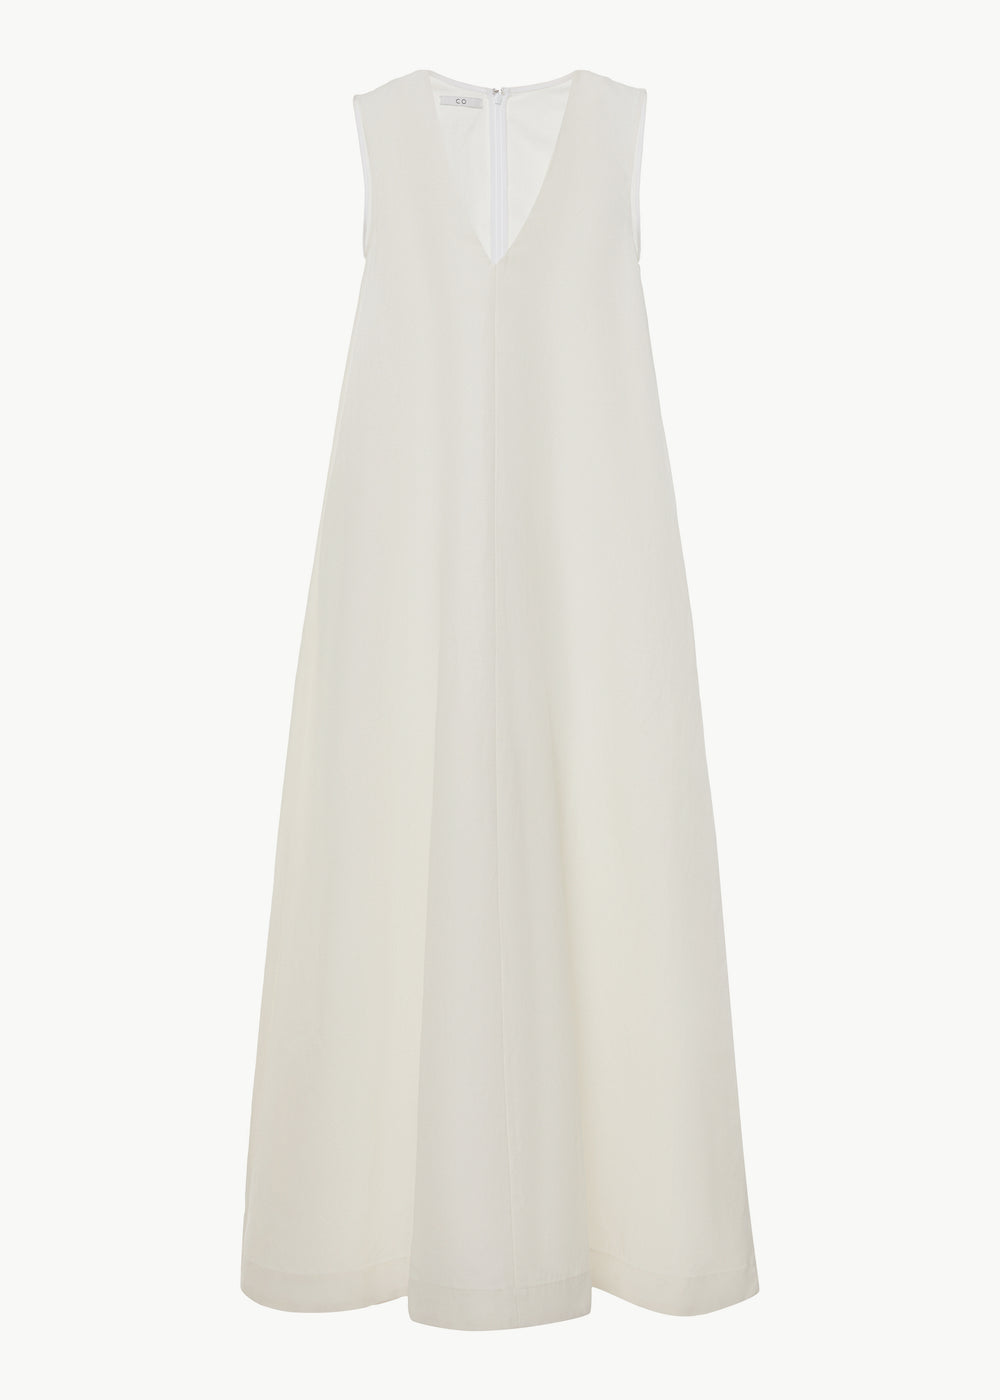 Sleeveless V Neck Dress in Cotton Linen - Ivory - CO